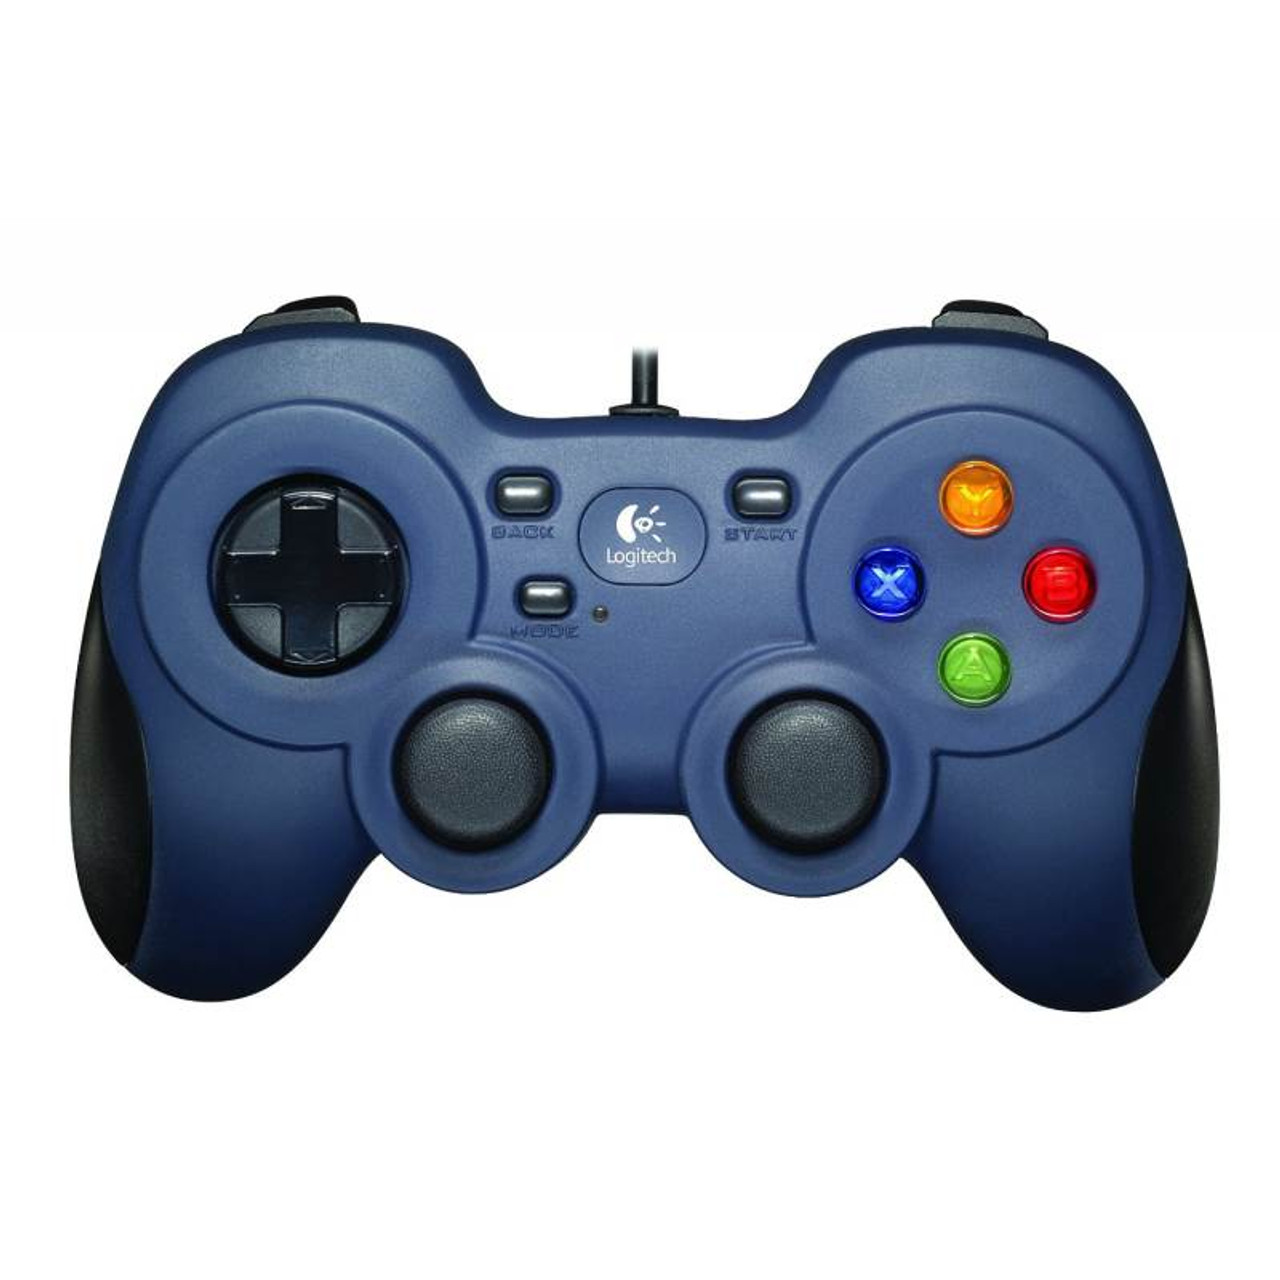 Product image for Logitech F310 USB Gamepad   CX Computer Superstore